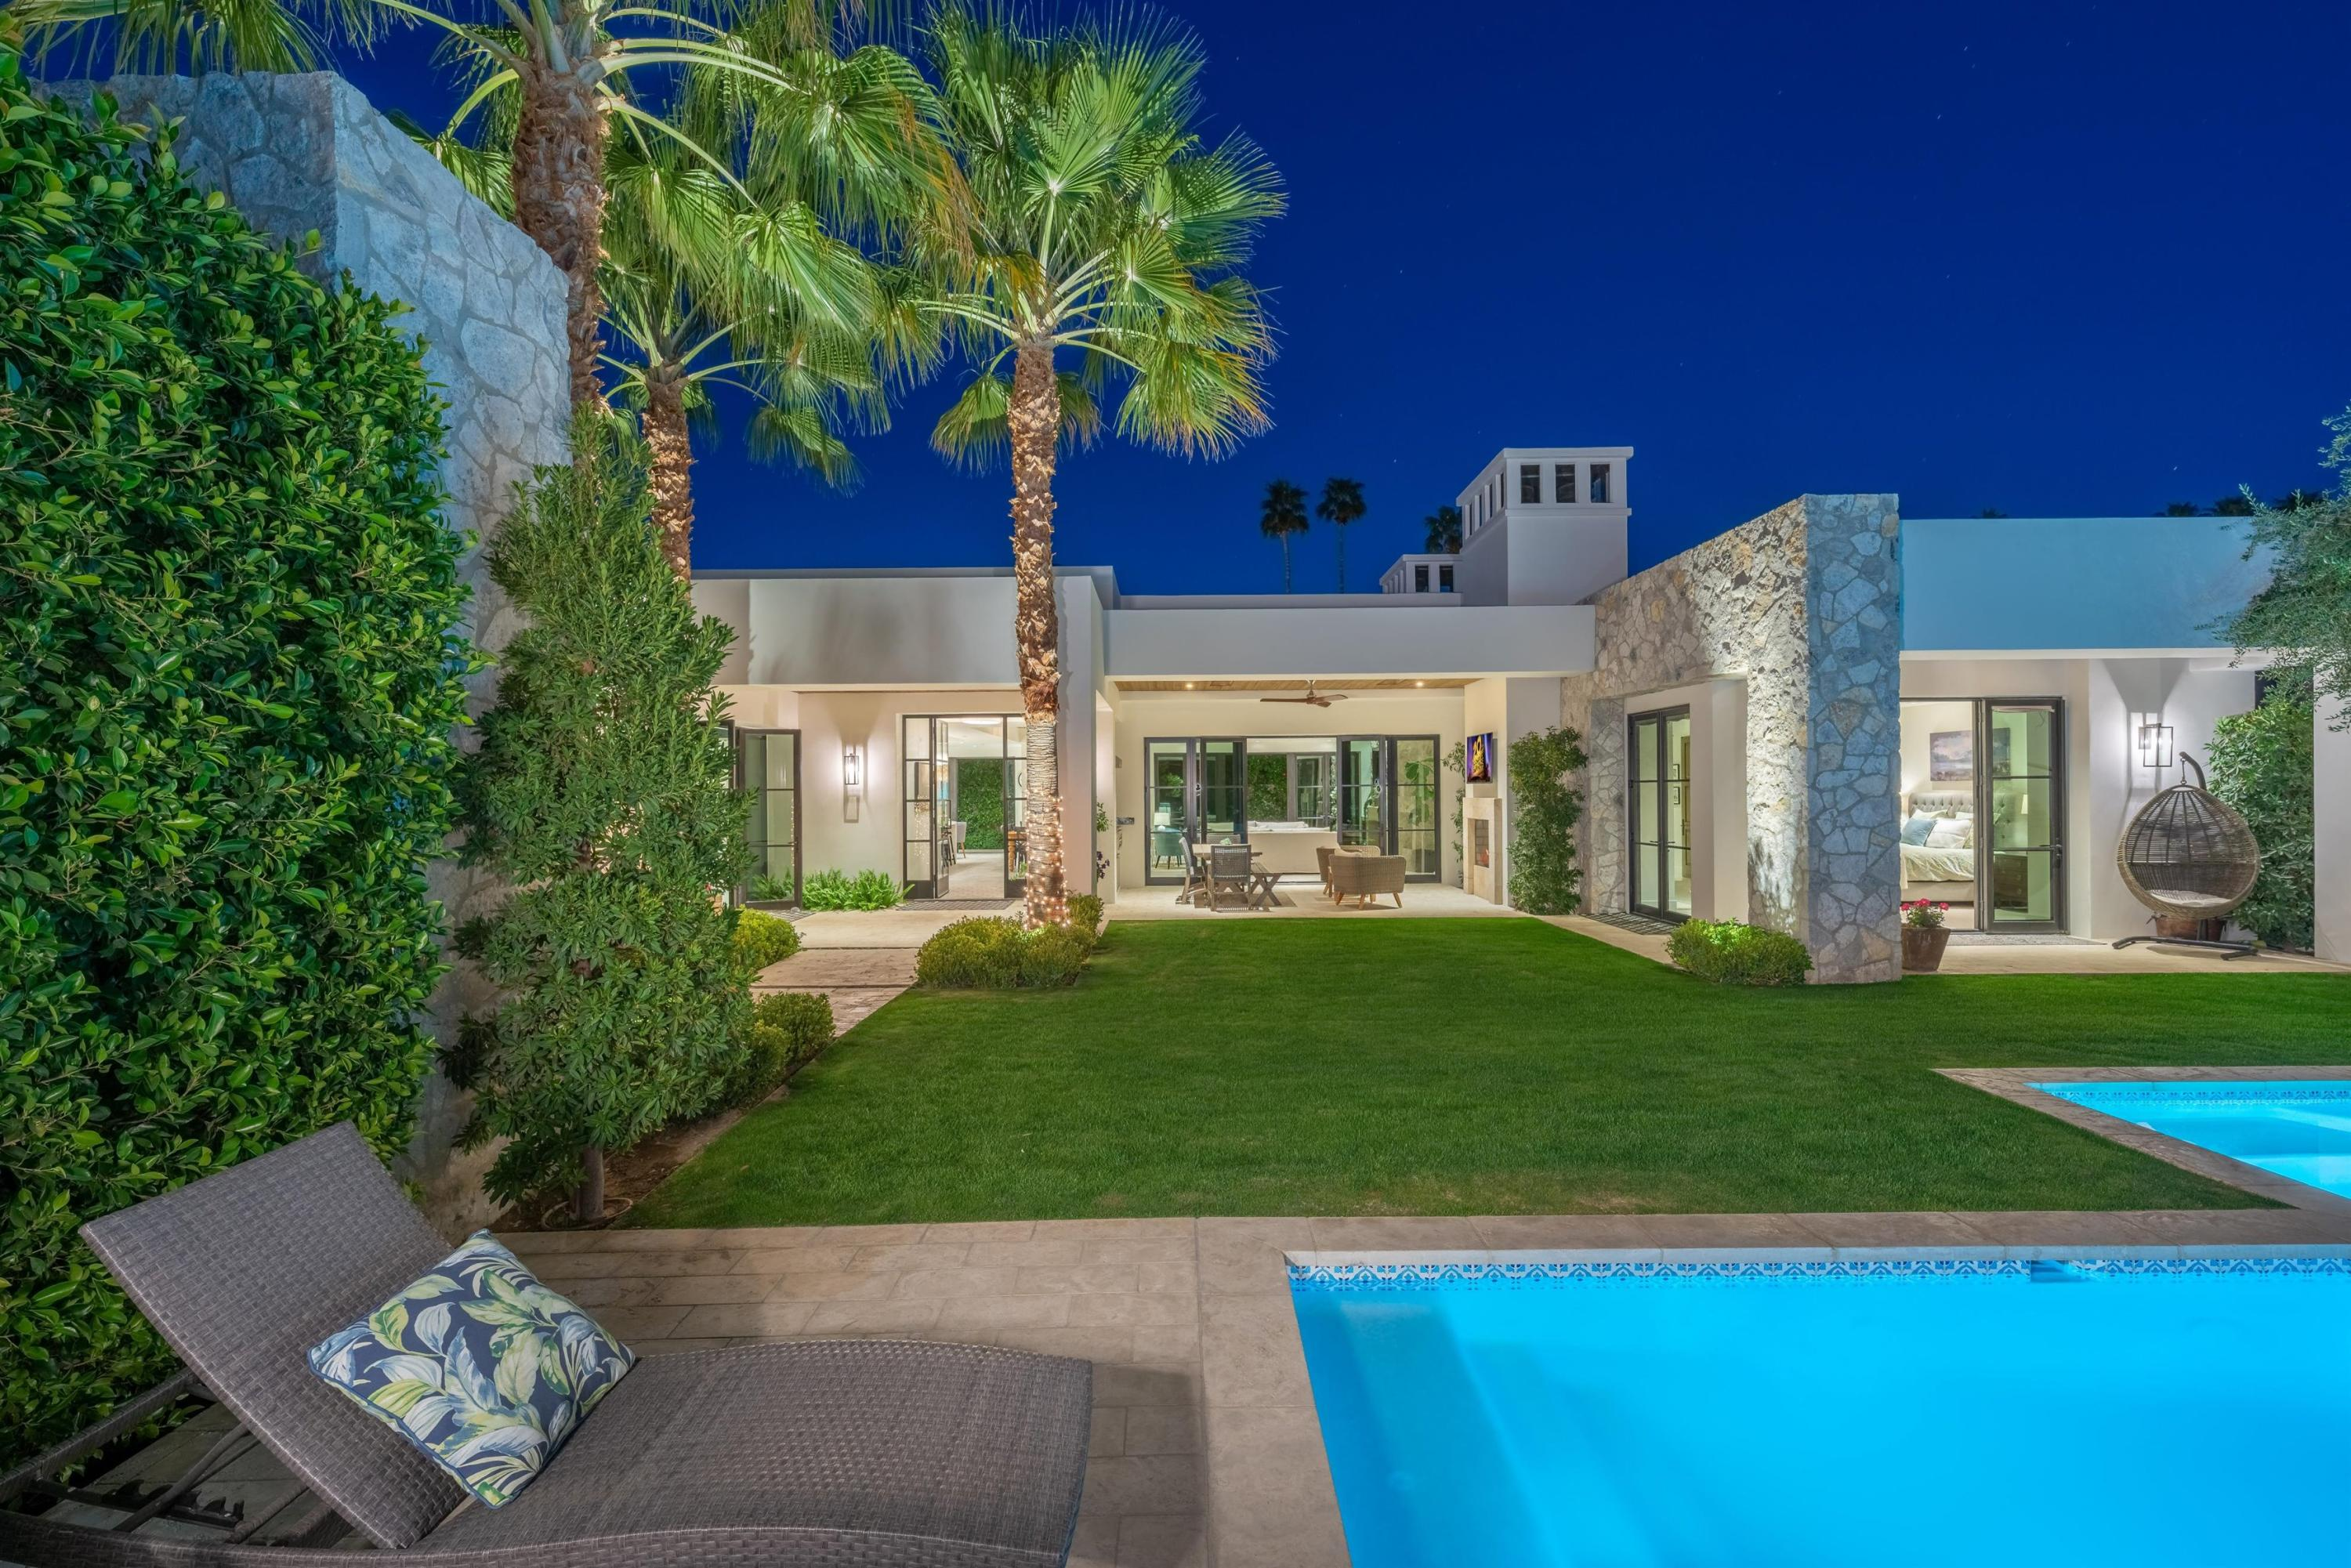 If privacy and seclusion is your desire - this desert oasis will fulfill. Tucked discreetly behind a massive iron door is an exquisite property built in 2019.  The open great room features 13+ft. ceilings with wood beams and stone accent walls and fireplace.  The multiple posh Kolbe windows and doors with high efficiency tint bring the outside in for morning breezes and natural light.  The kitchen features Rohl faucets and Shaws of England double farm sink. There is a 48' dual fuel Wolf range with two ovens, Thermador custom paneled tower refrigerator and freezer and a large white Pentalquartz island. There is a walk-in pantry with a 2nd full size refrigerator. In addition, there is a laundry/staging/storage room with roll out wrapping paper station.  Offering Visual Comfort and Restoration Hardware - the lighting throughout this Smart home is stunning.  The interior doors are vertical grain riffed cut oak. The master suite offers a fireplace and stunning mountain views along with two walk-in closets and dreamy bath. There are 3 more guest suites and a designer powder bath.  A TV/Media room also opens to the yard area.  The outdoor living/dining room feature fireplace, TV & 36' Lynx grill. The pool and spa feature Zanzibar white pool finish of mini pebble with pool tile imported from Tunisia. A full 3 car garage features new epoxy flooring. For the most discriminating taste you must see to appreciate this impeccable property.